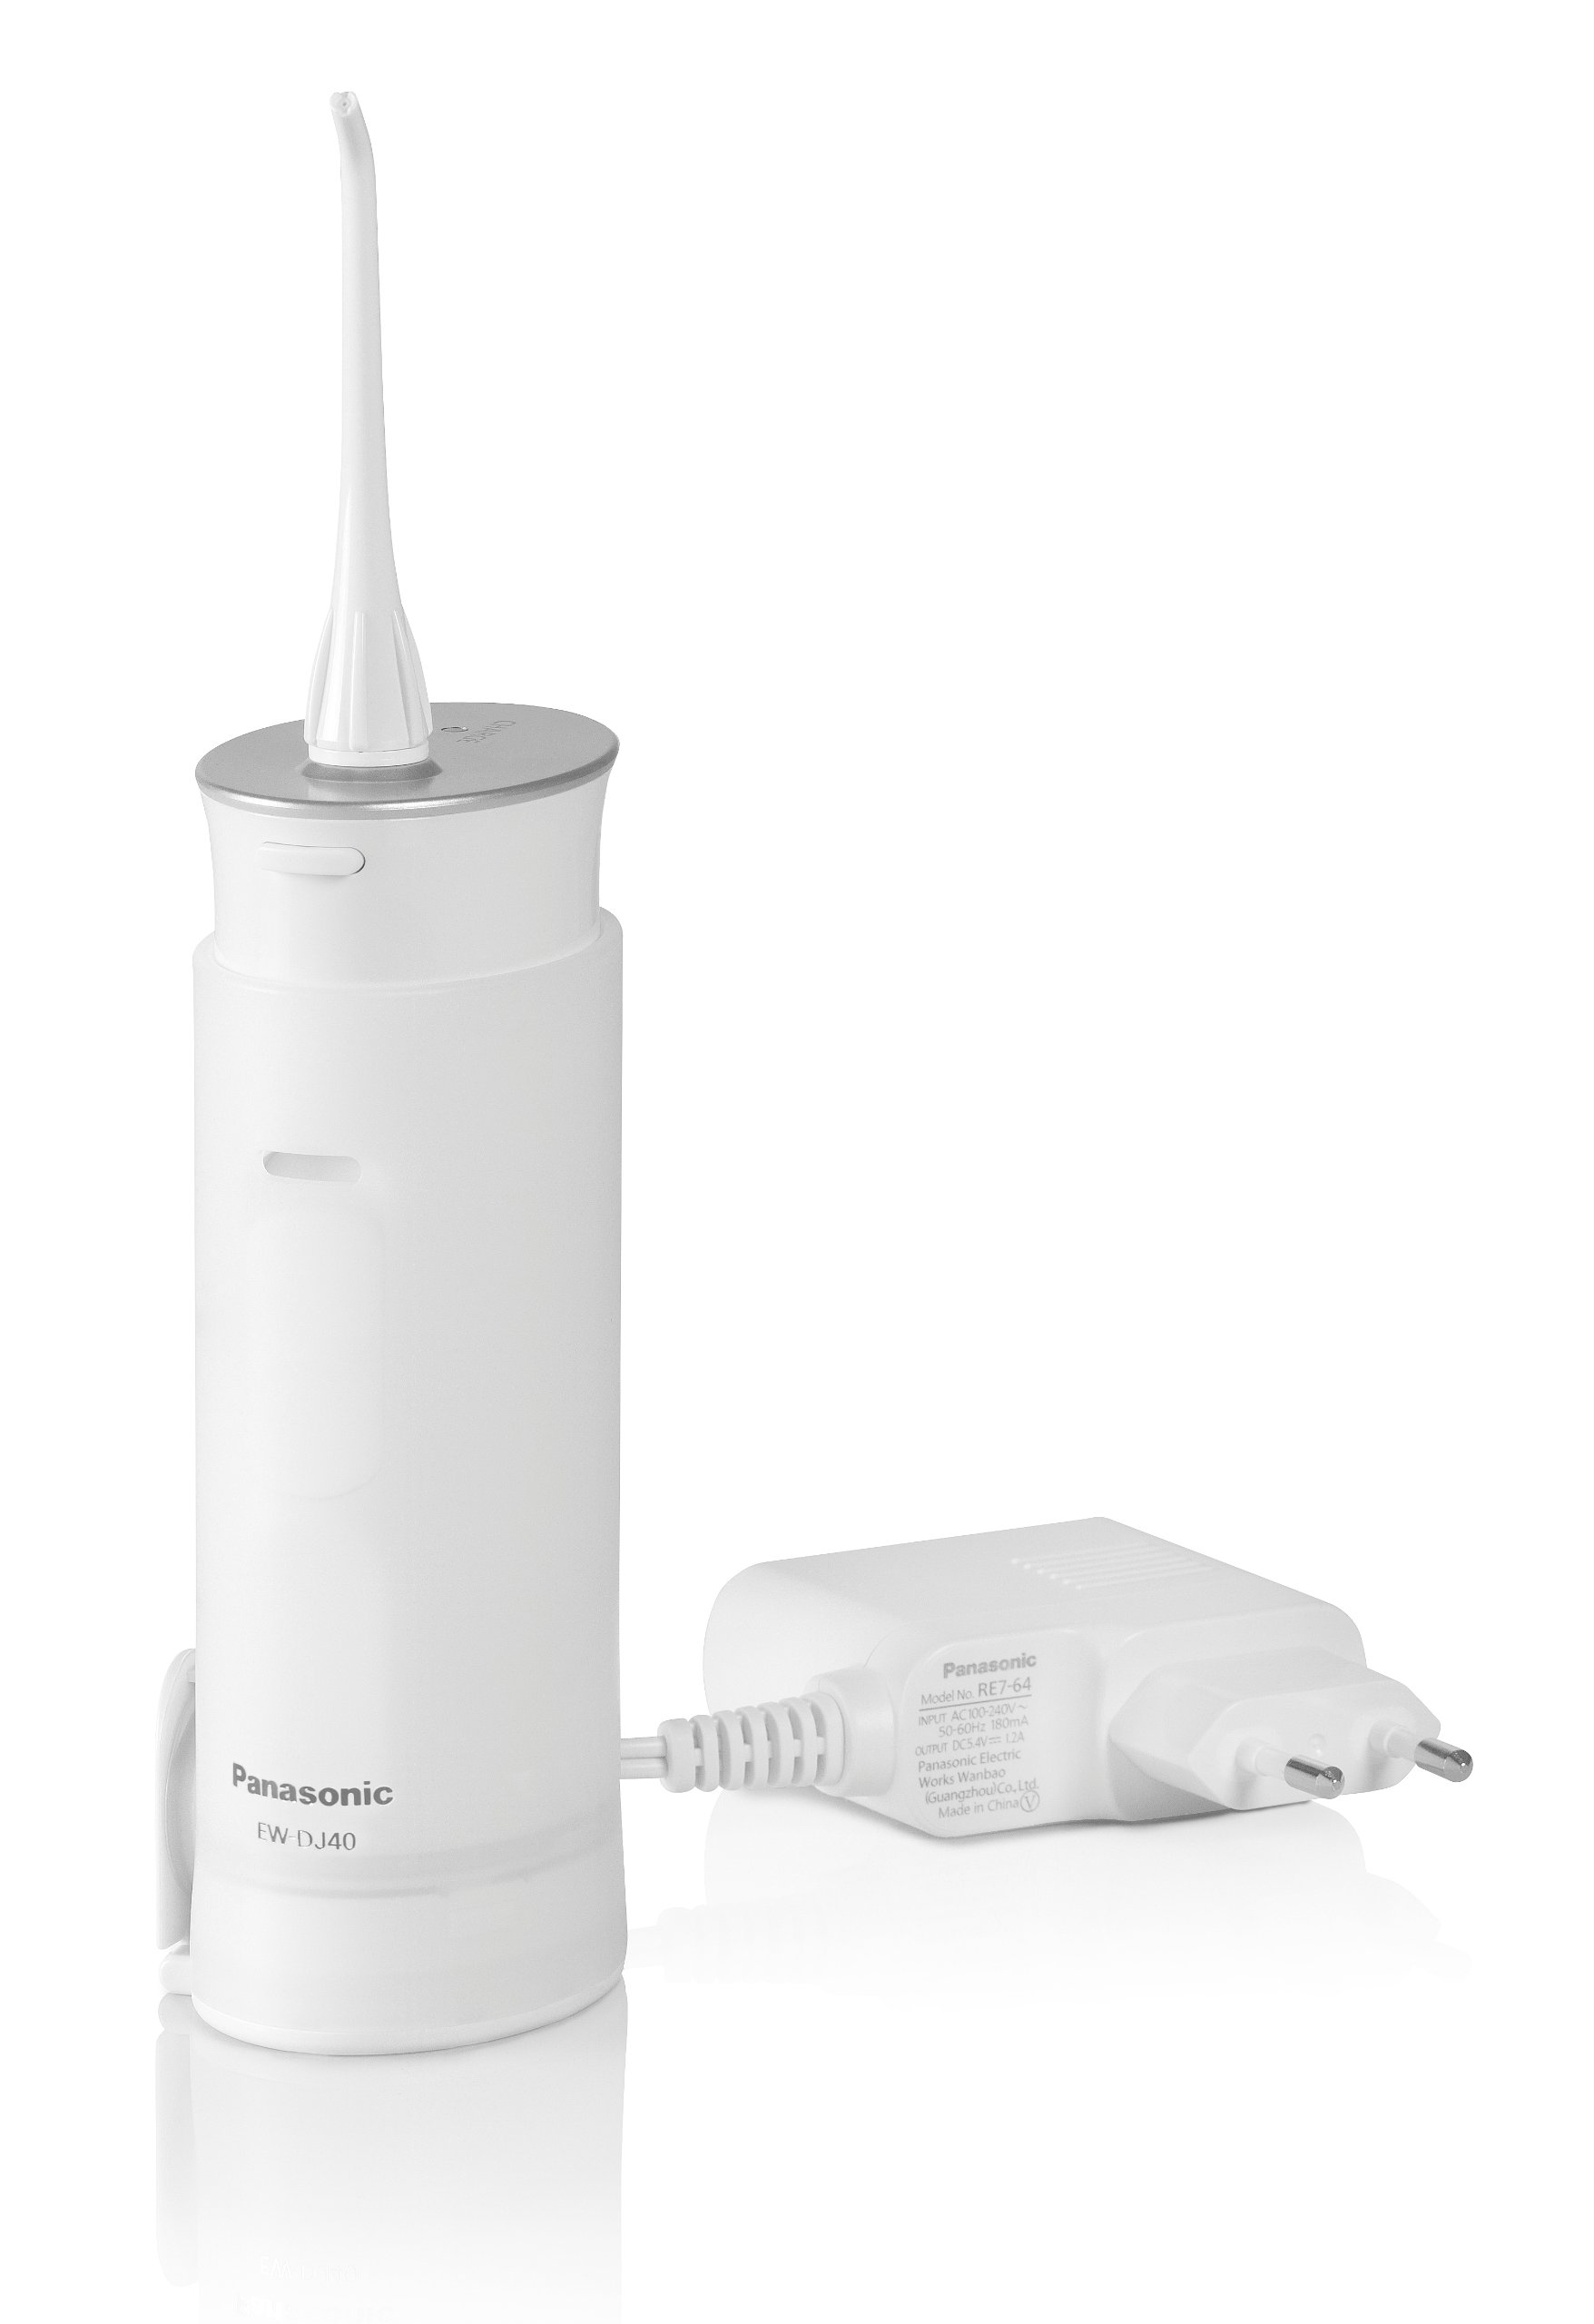 Panasonic - Jet dentaire Panasonic Dentacare EW DJ40 product image